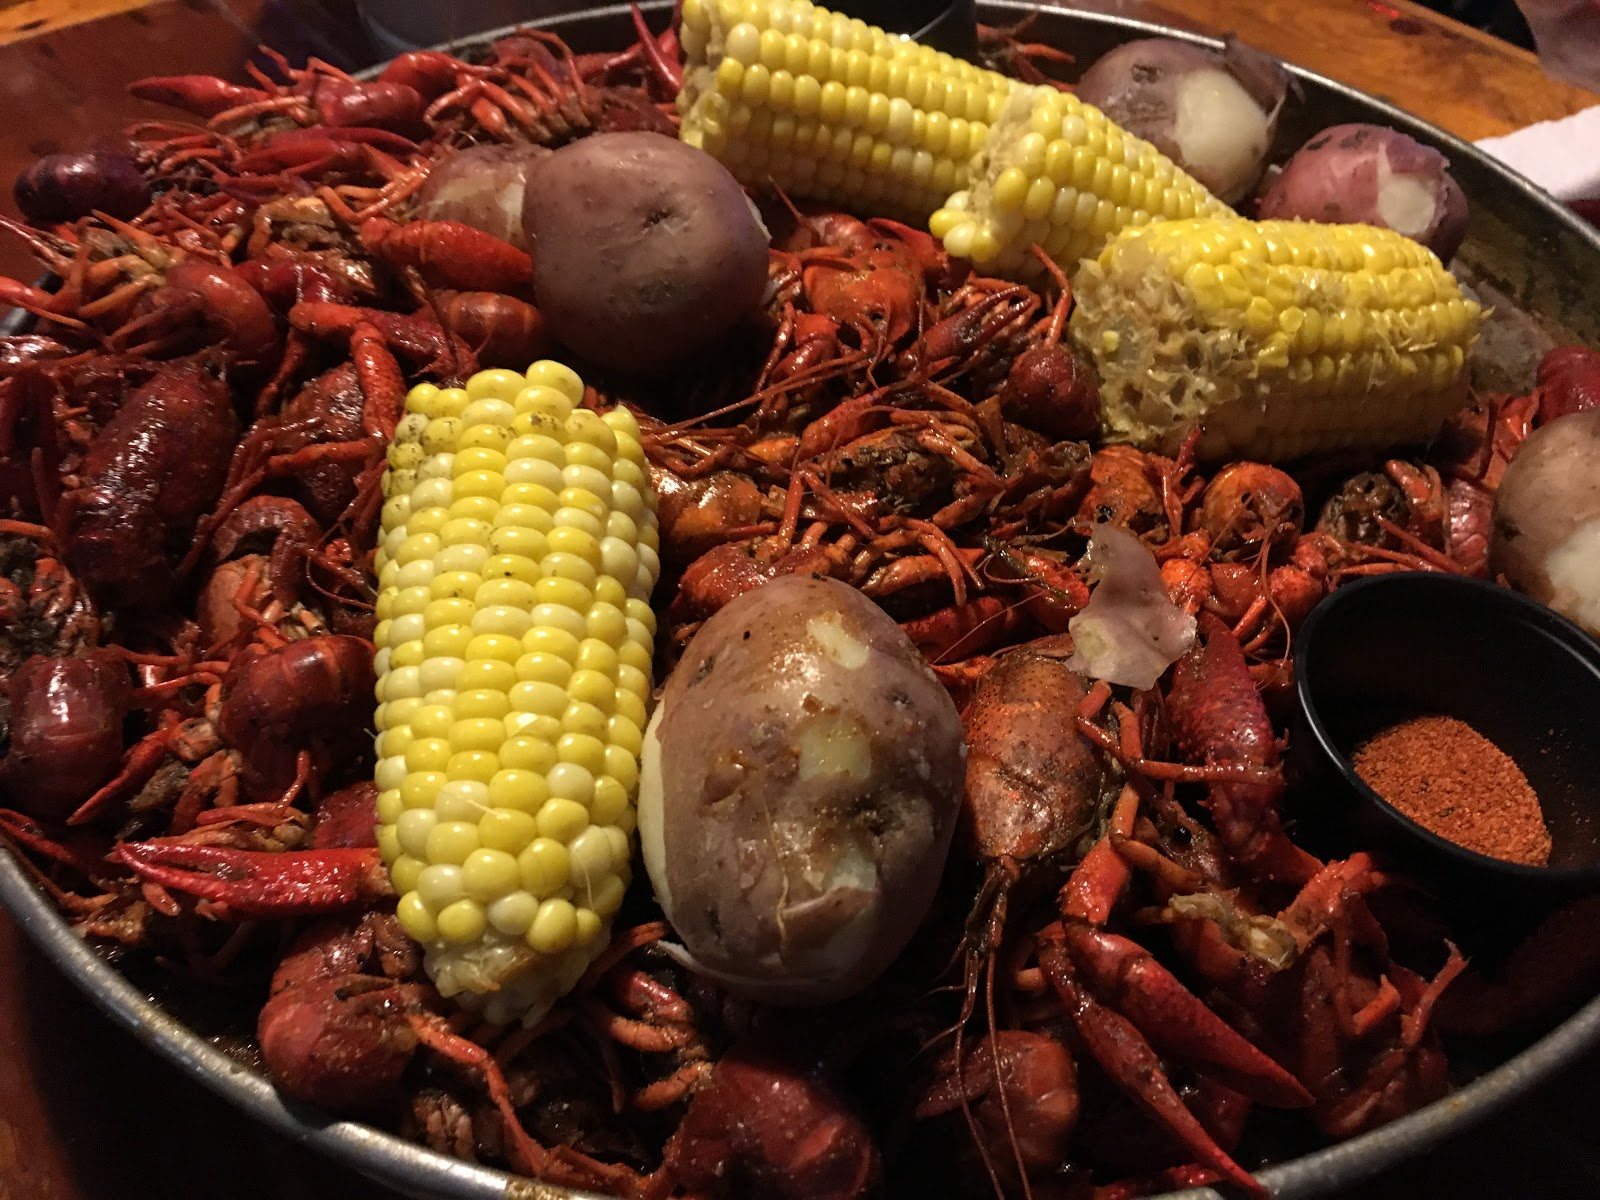 Crawfish, crawfish boil, corn, crawfish season, Crazy Alan's Swamp Shack Kemah Texas